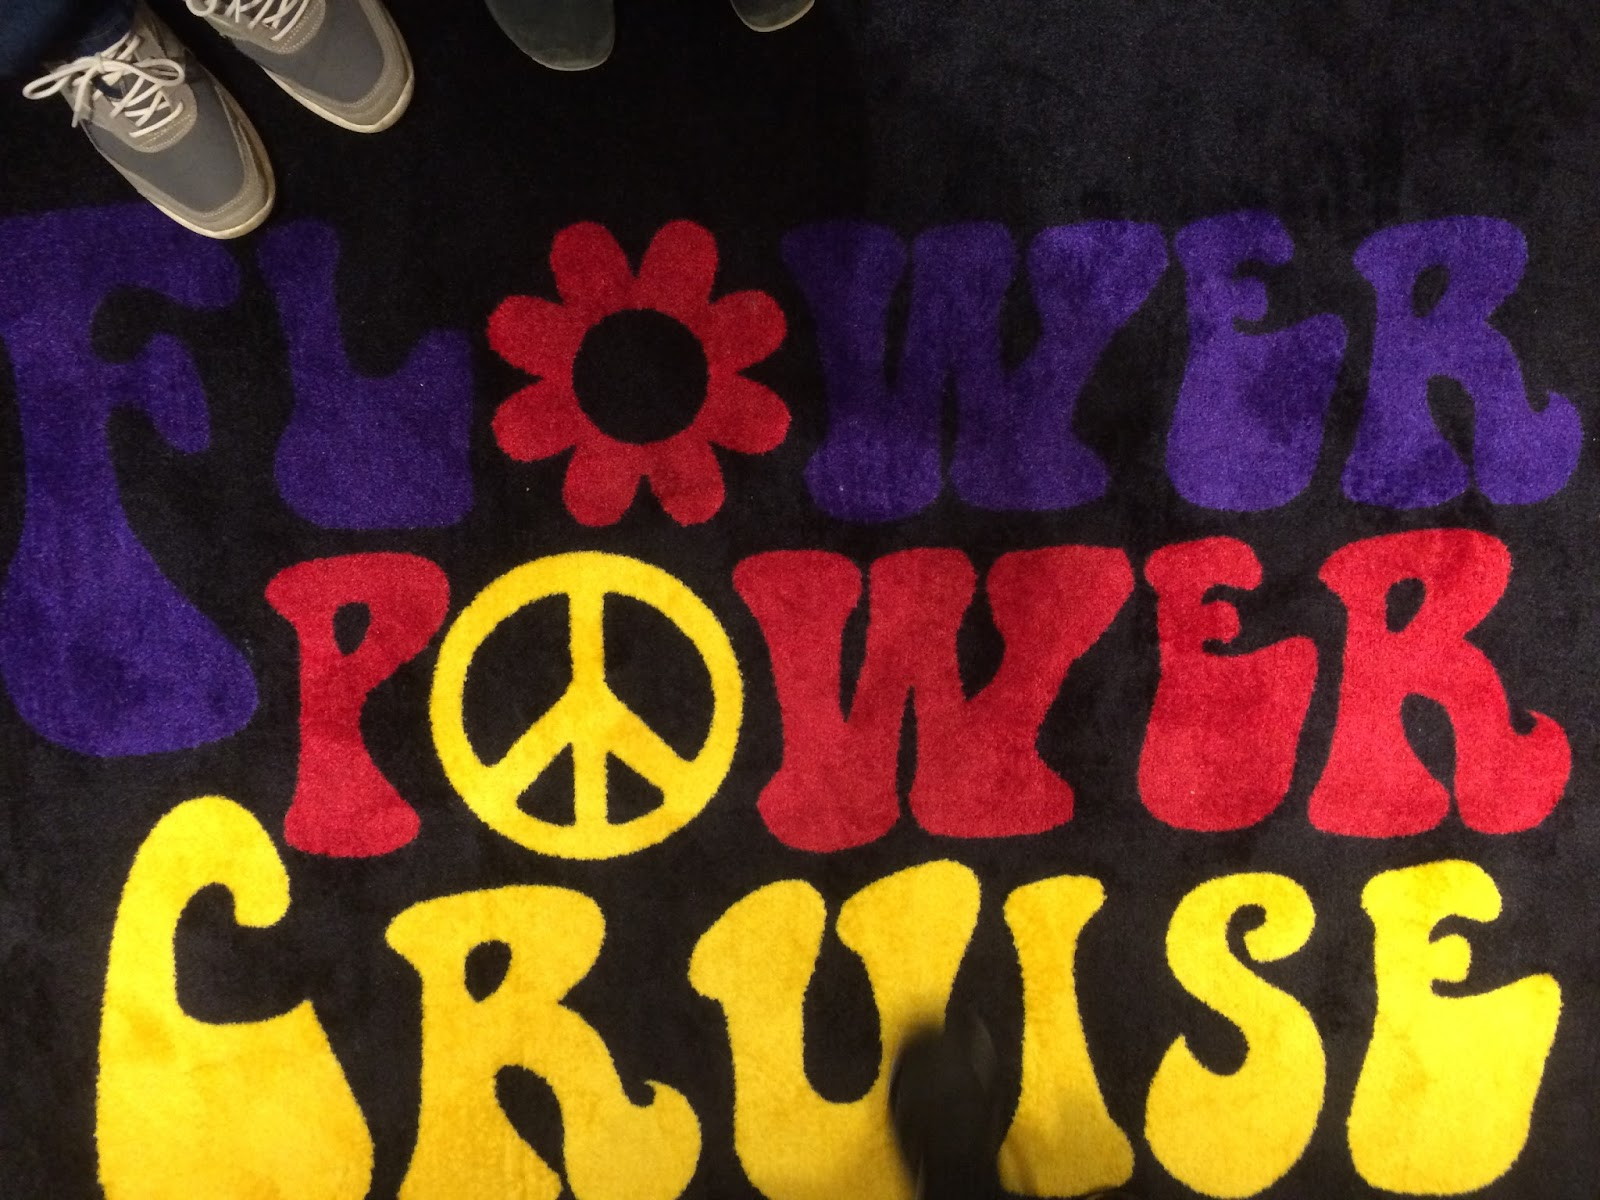 Flower Power Cruise sails into the '60s with music, peace ...